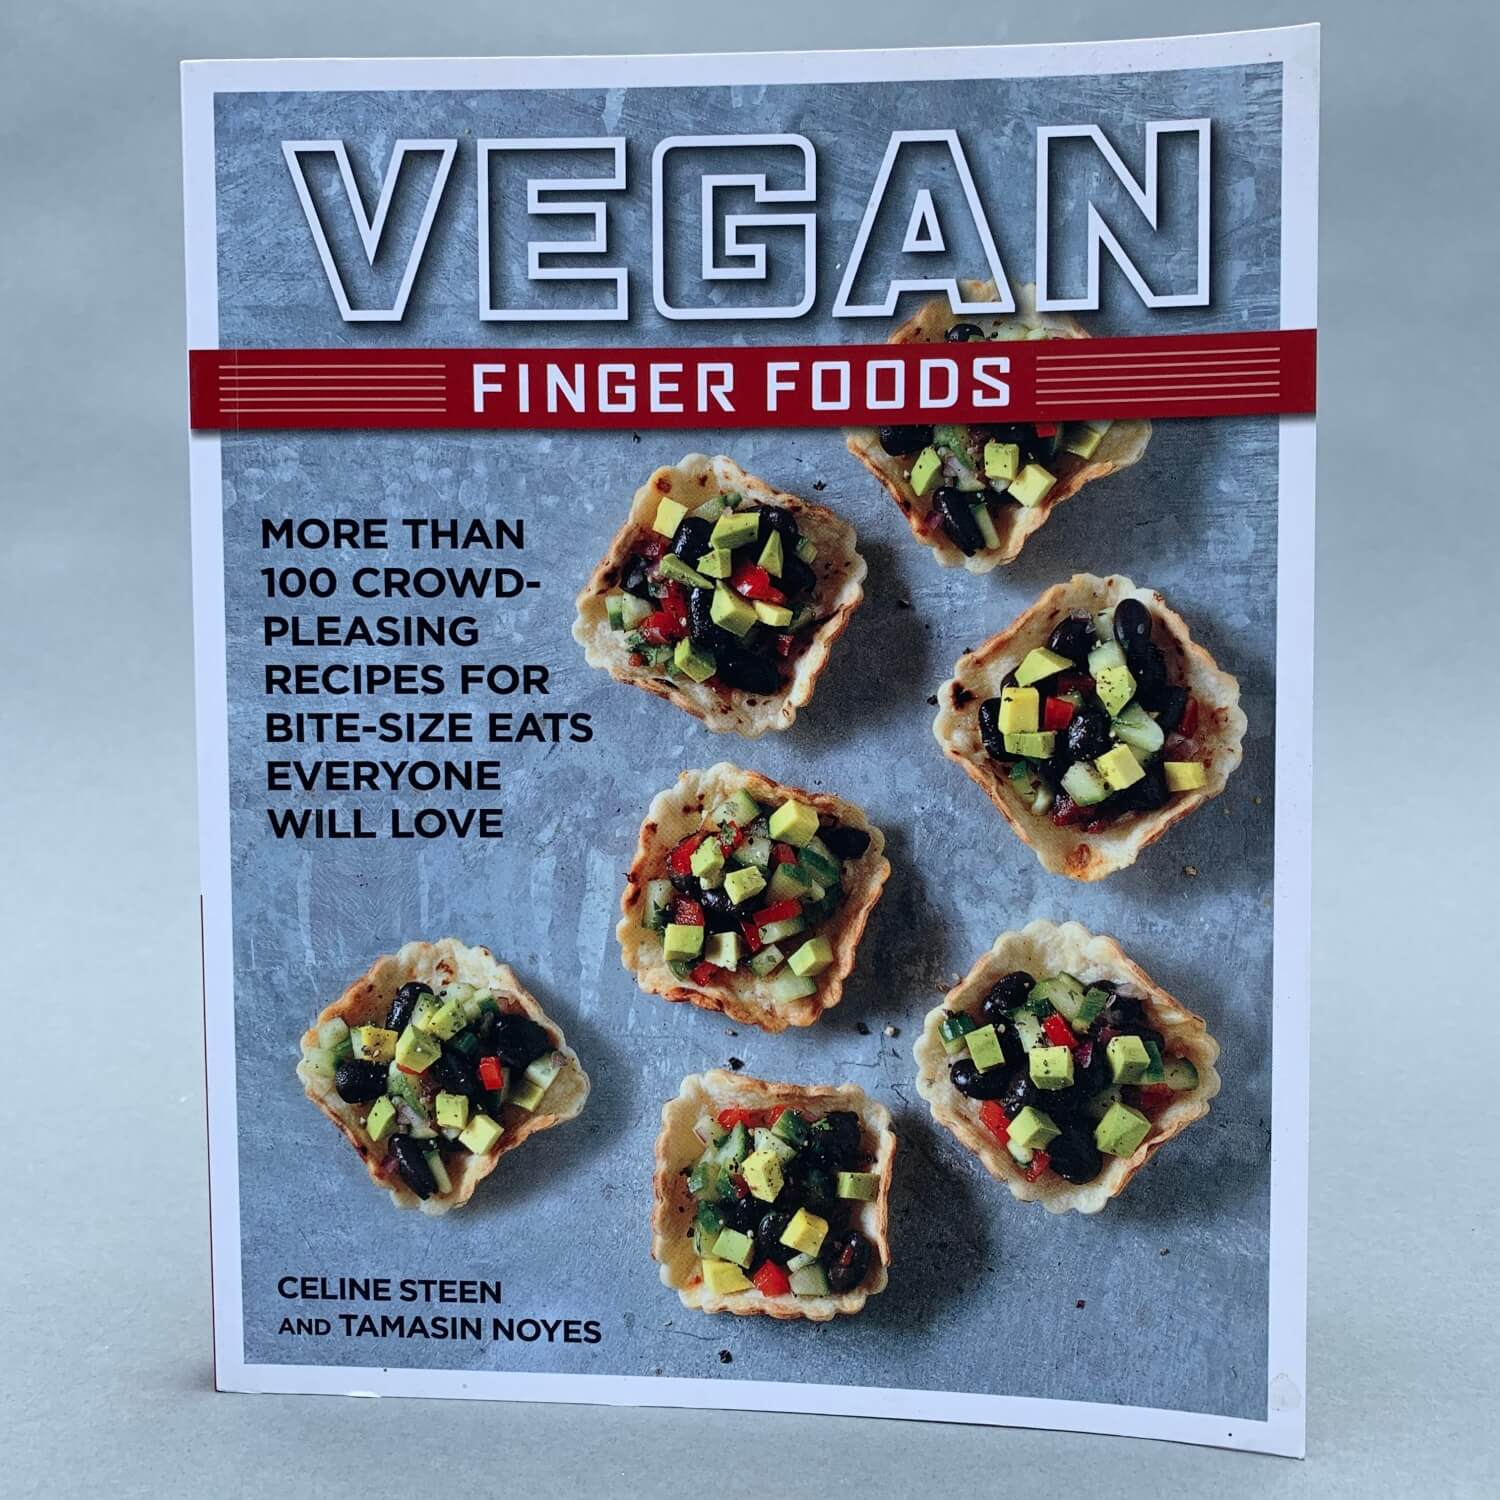 Vegan Finger Foods